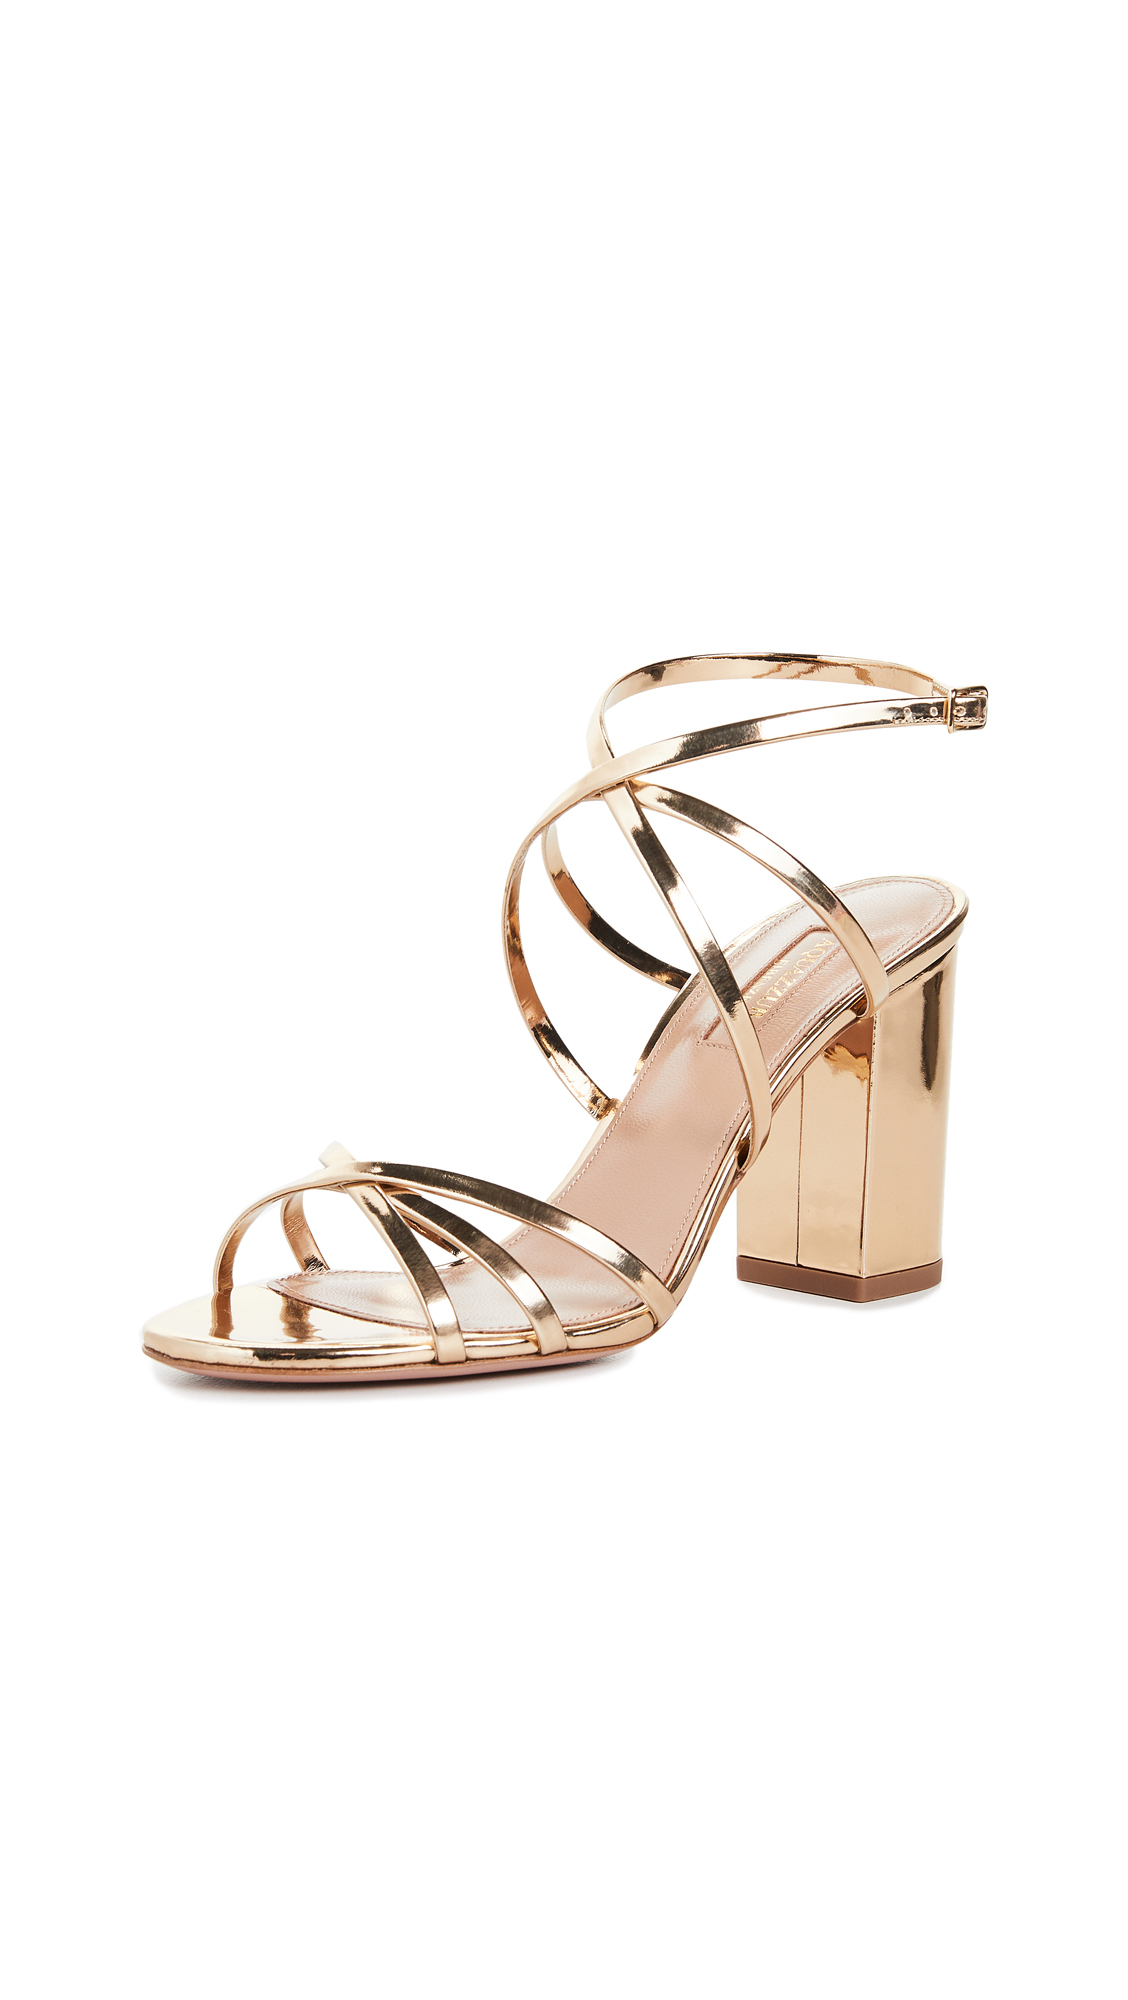 Buy Aquazzura 85mm Gin Sandals online, shop Aquazzura